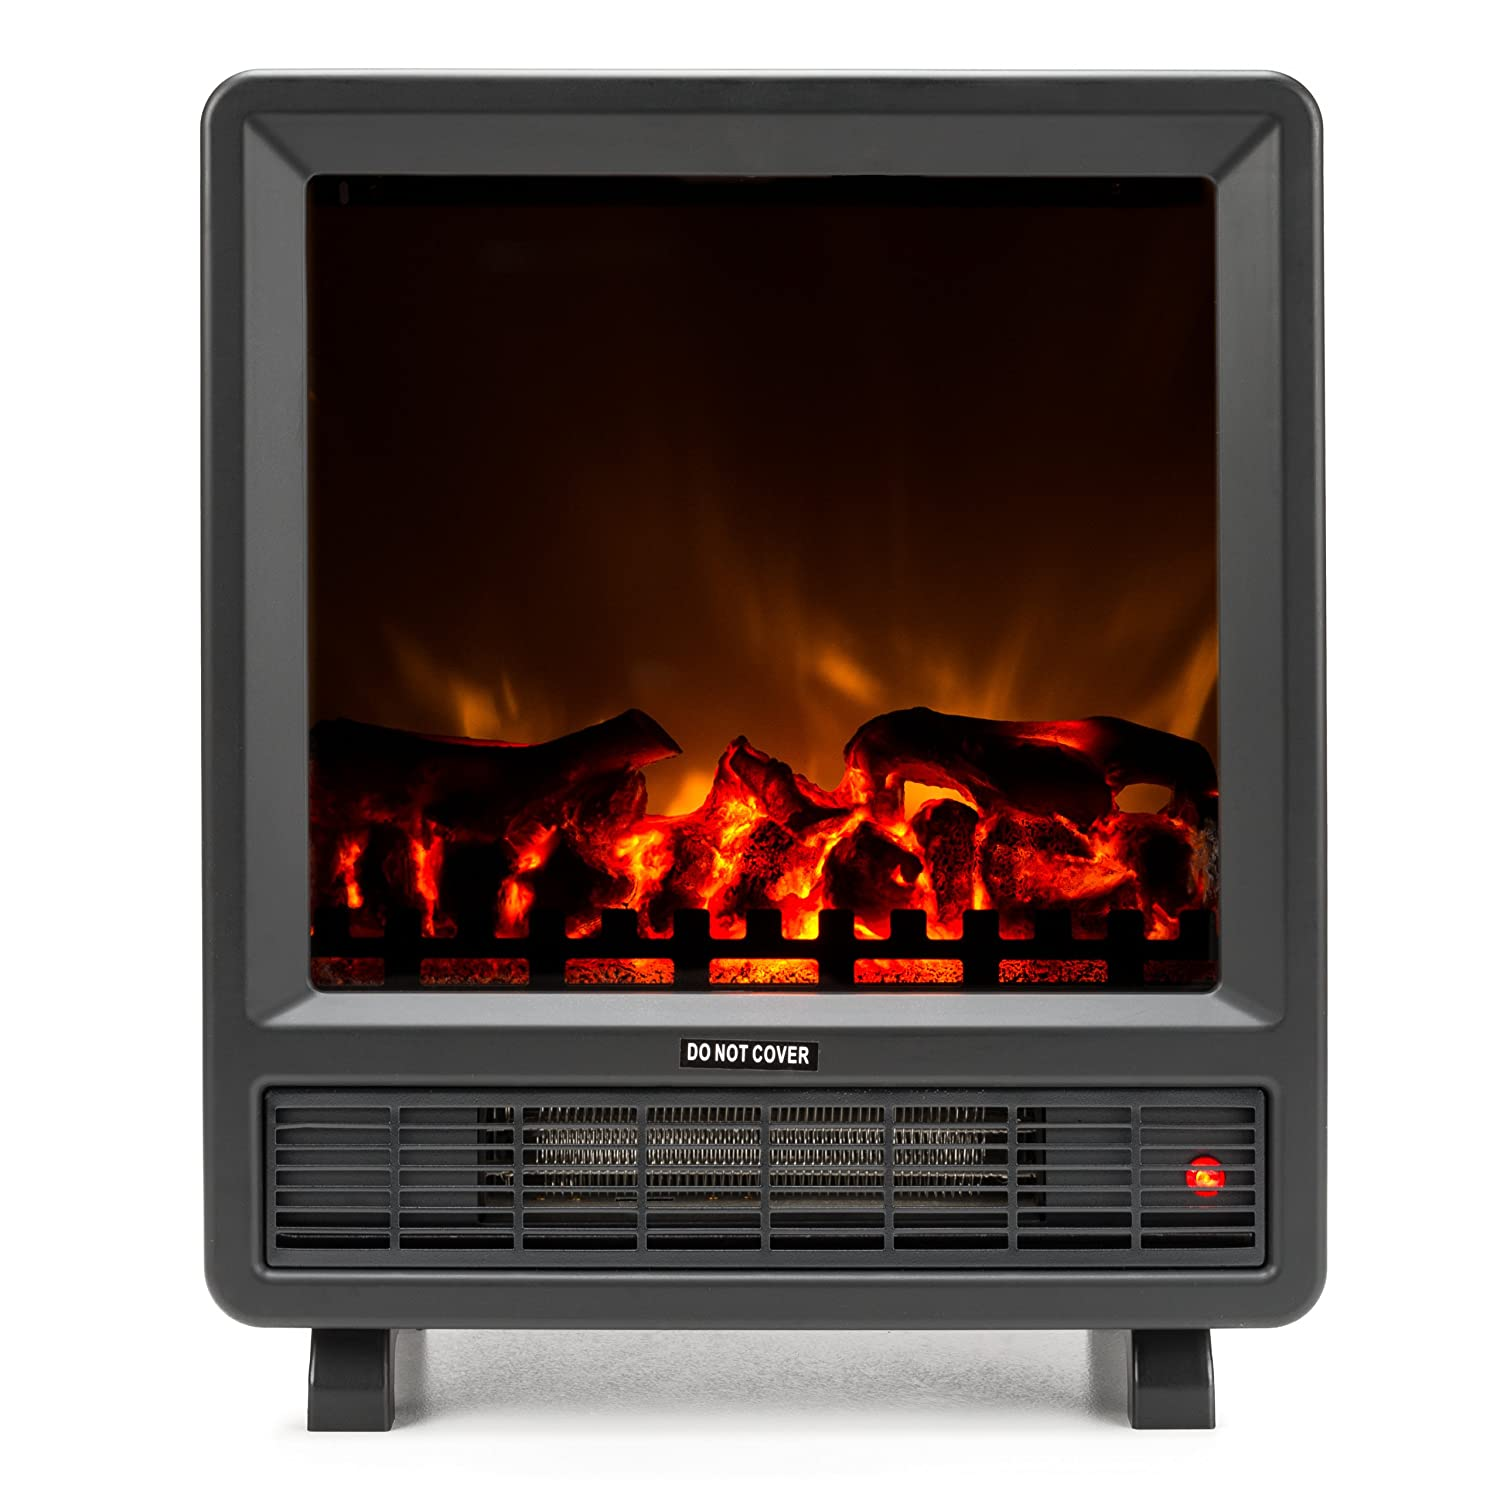 Amazon.com: Rochester Portable Electric Fireplace Stove by e-Flame USA (Matte Black) - 17.5-inches Tall Freestanding Fireplace Features Heater and Fan Settings with Realistic Brightly Burning Fire and Logs: Home & Kitchen